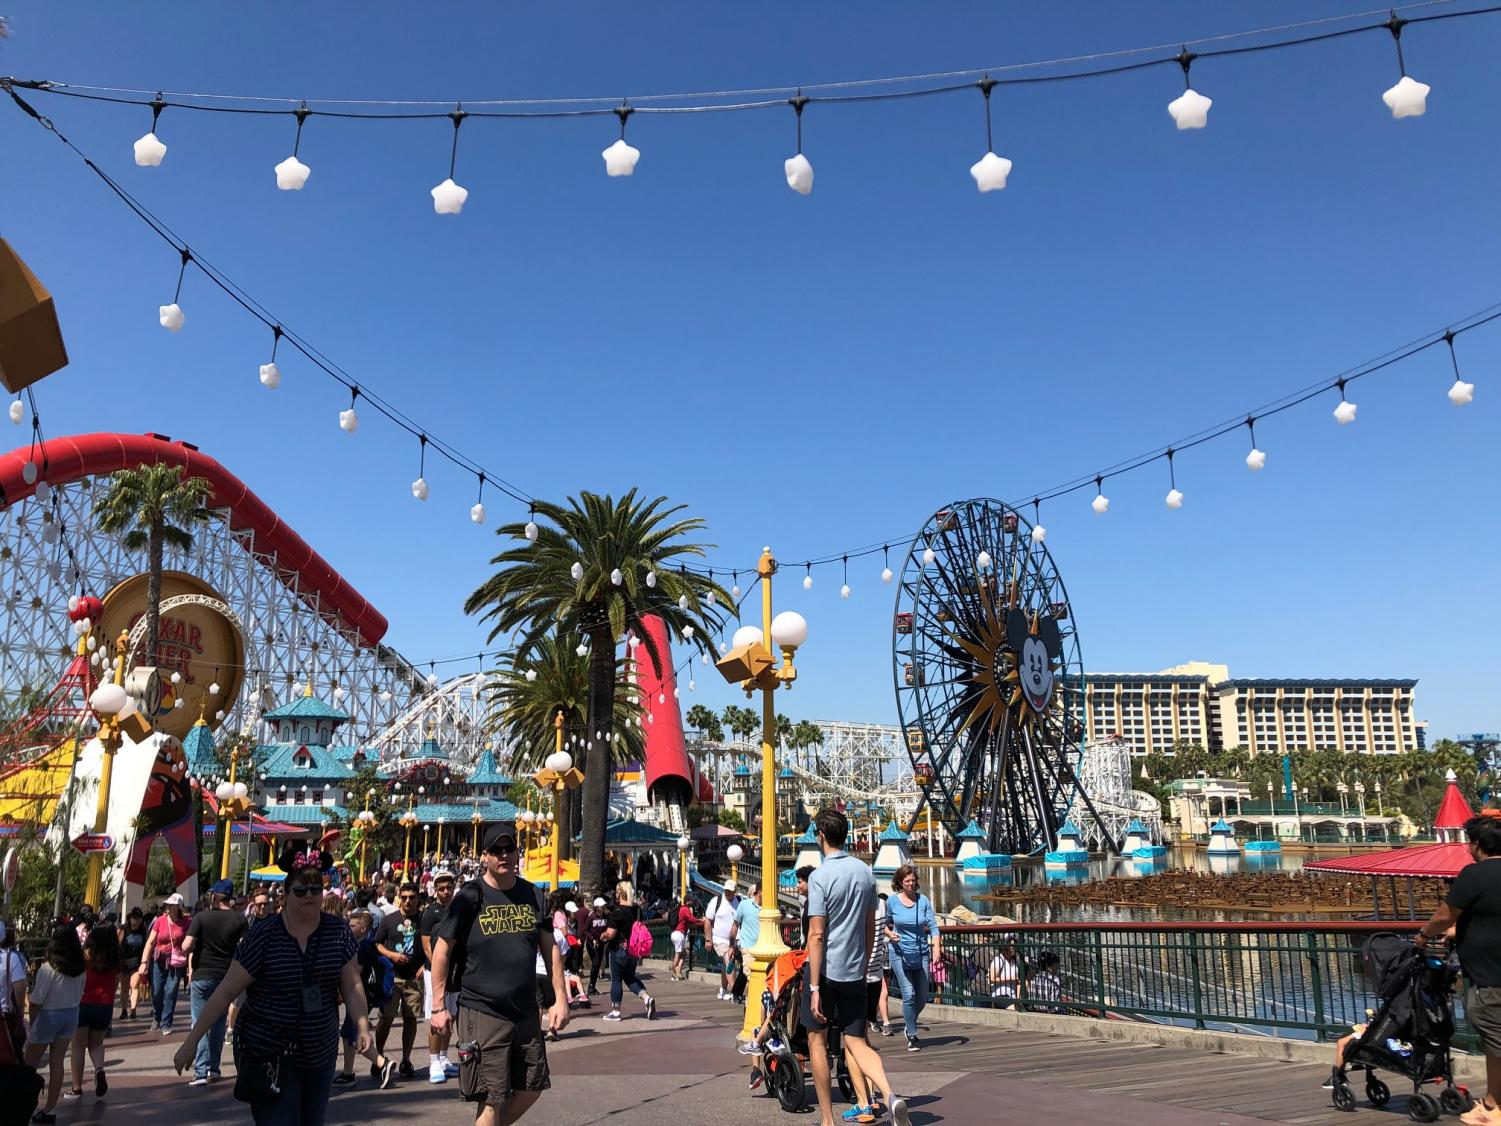 The staff of The Falconer visited Disney California Adventure Park while in Anaheim, CA for the Spring National High School Journalism Convention.